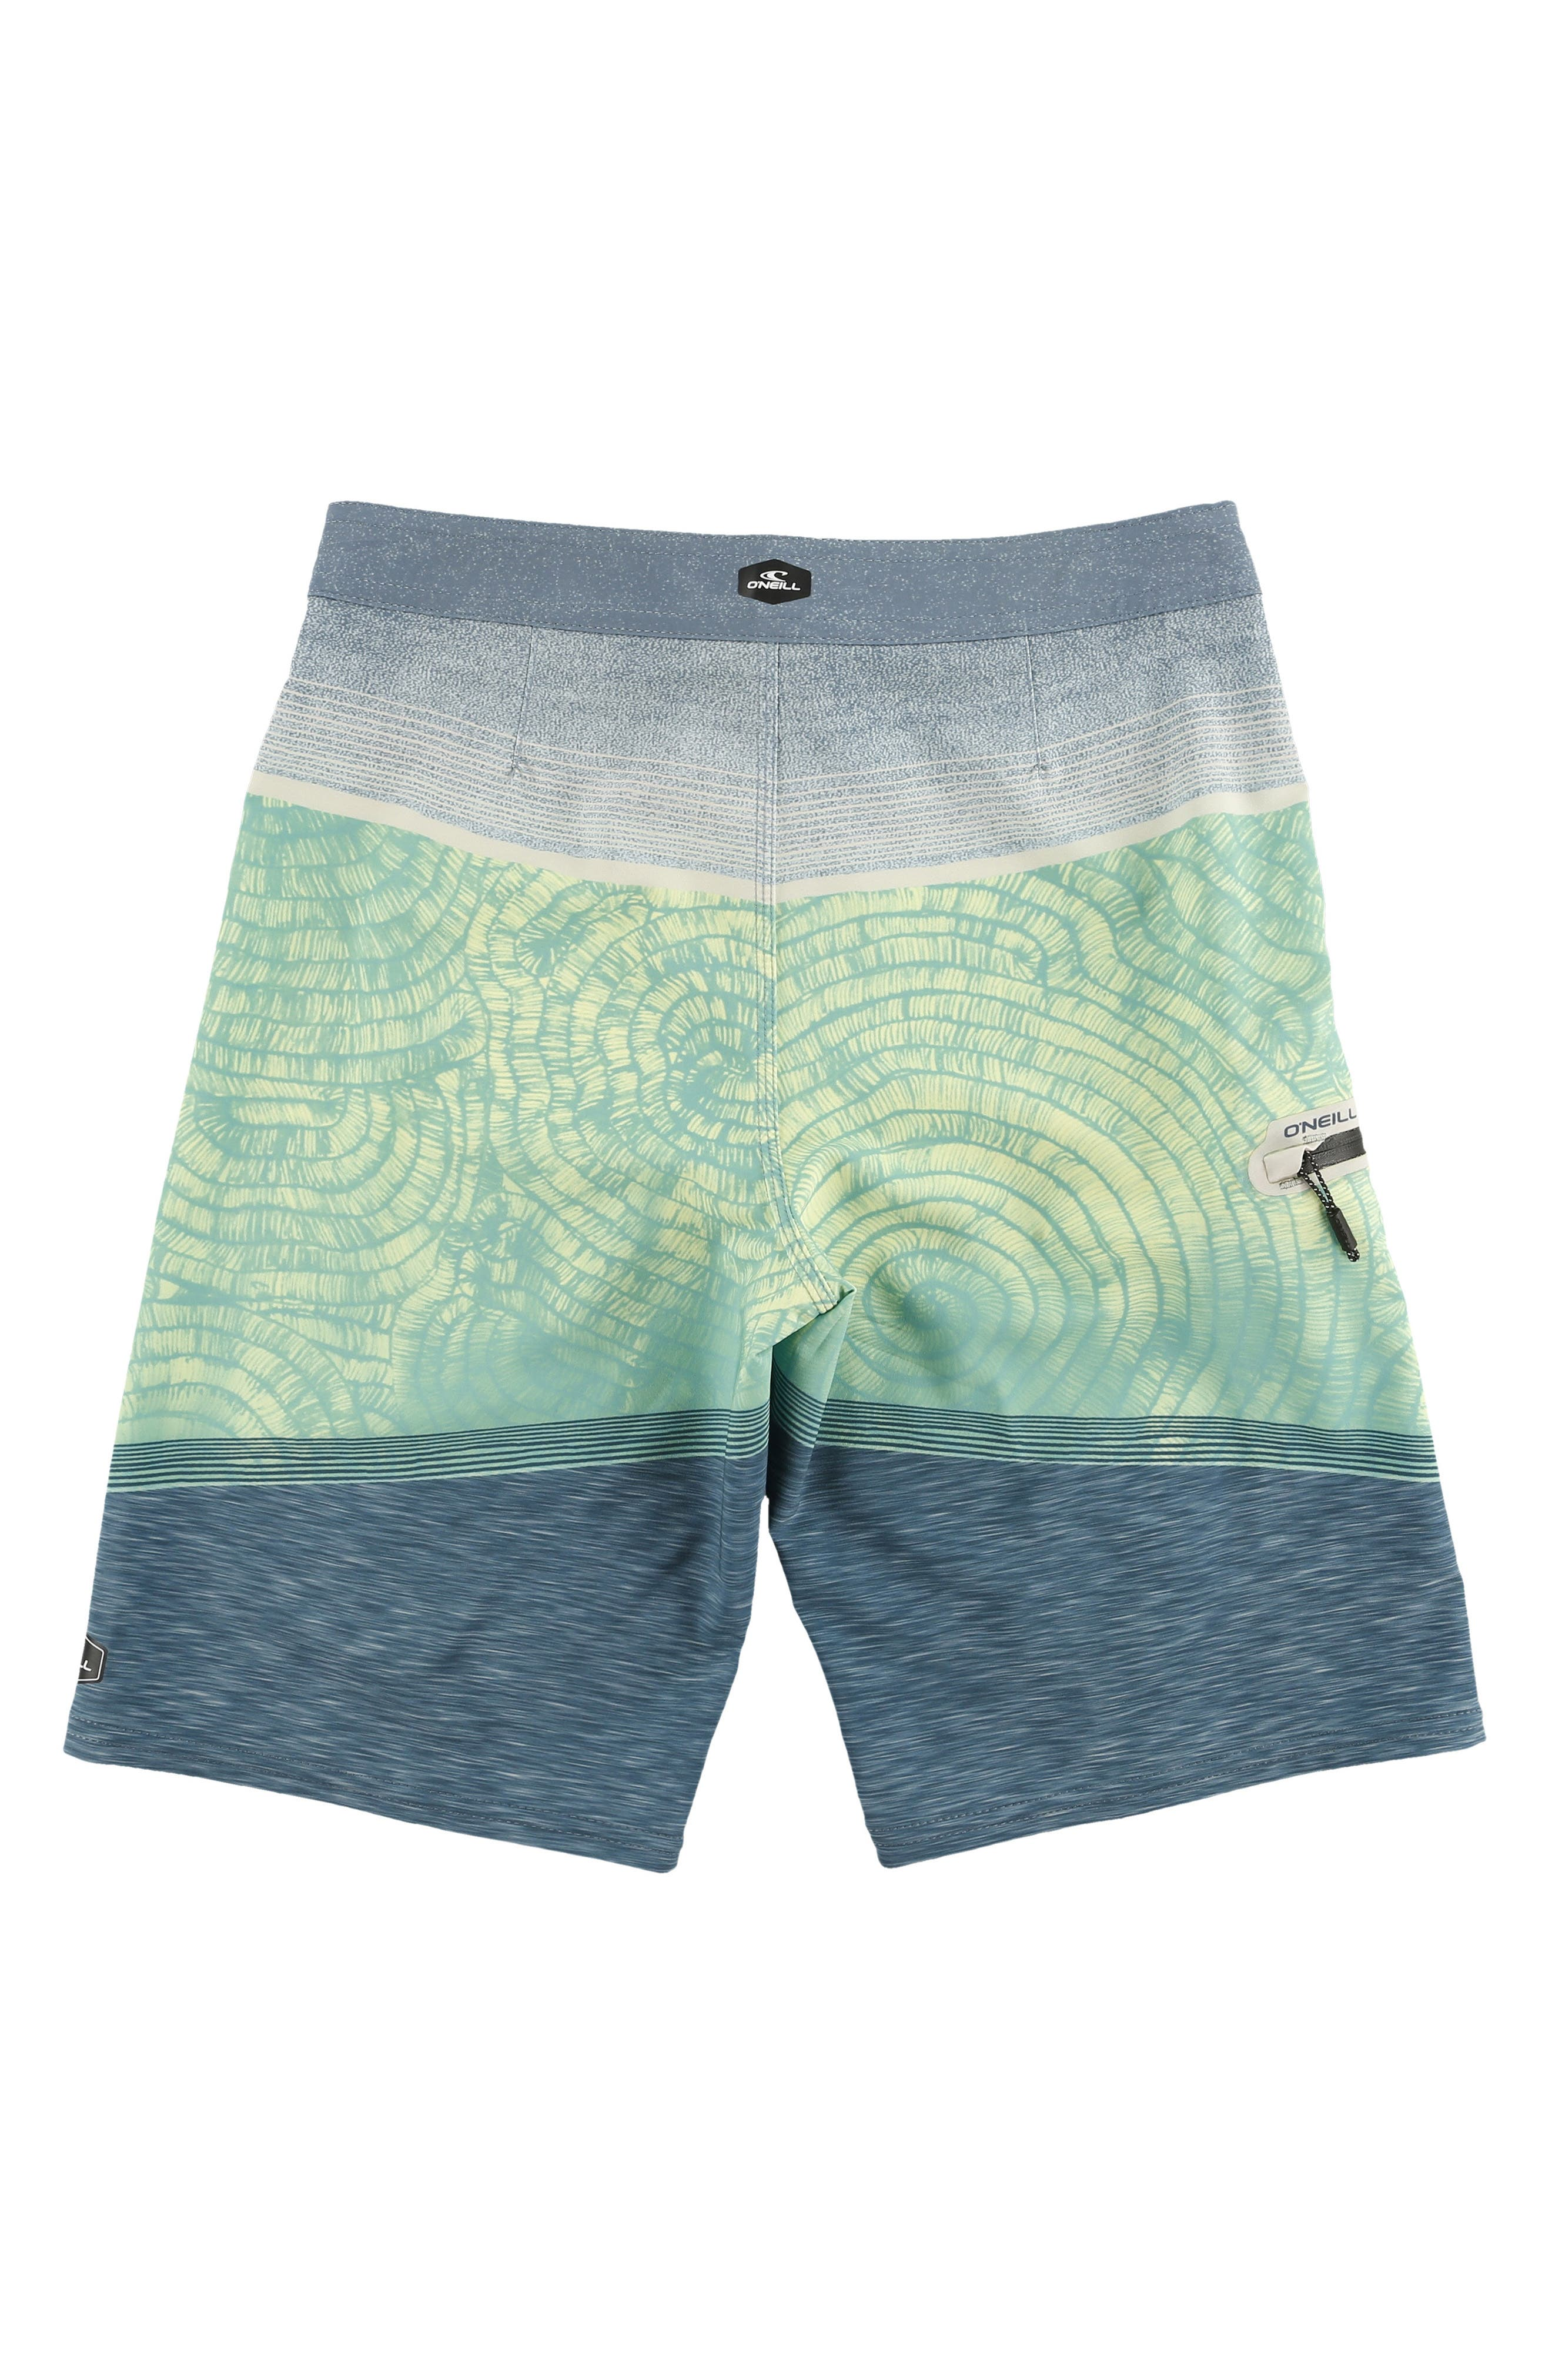 Hyperfreak Board Shorts,                             Alternate thumbnail 2, color,                             AQUARIUS